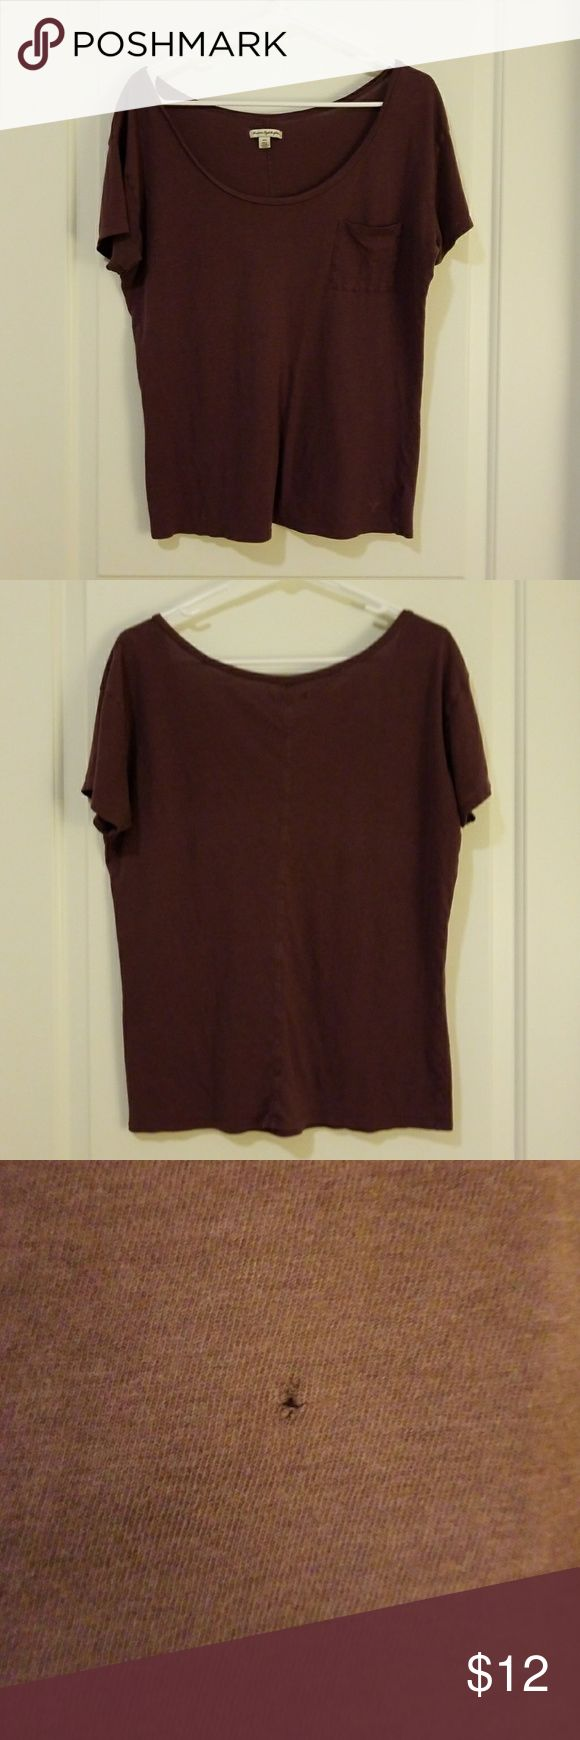 Purple Boatneck Tee Purple boat neck short sleeve tee with chest pockets, Size M, used, small hole near bottom (pictured)  3 for $12 DEAL: Bundle any 3 items priced at $12 in my closet and Offer $12. American Eagle Outfitters Tops Tees - Short Sleeve